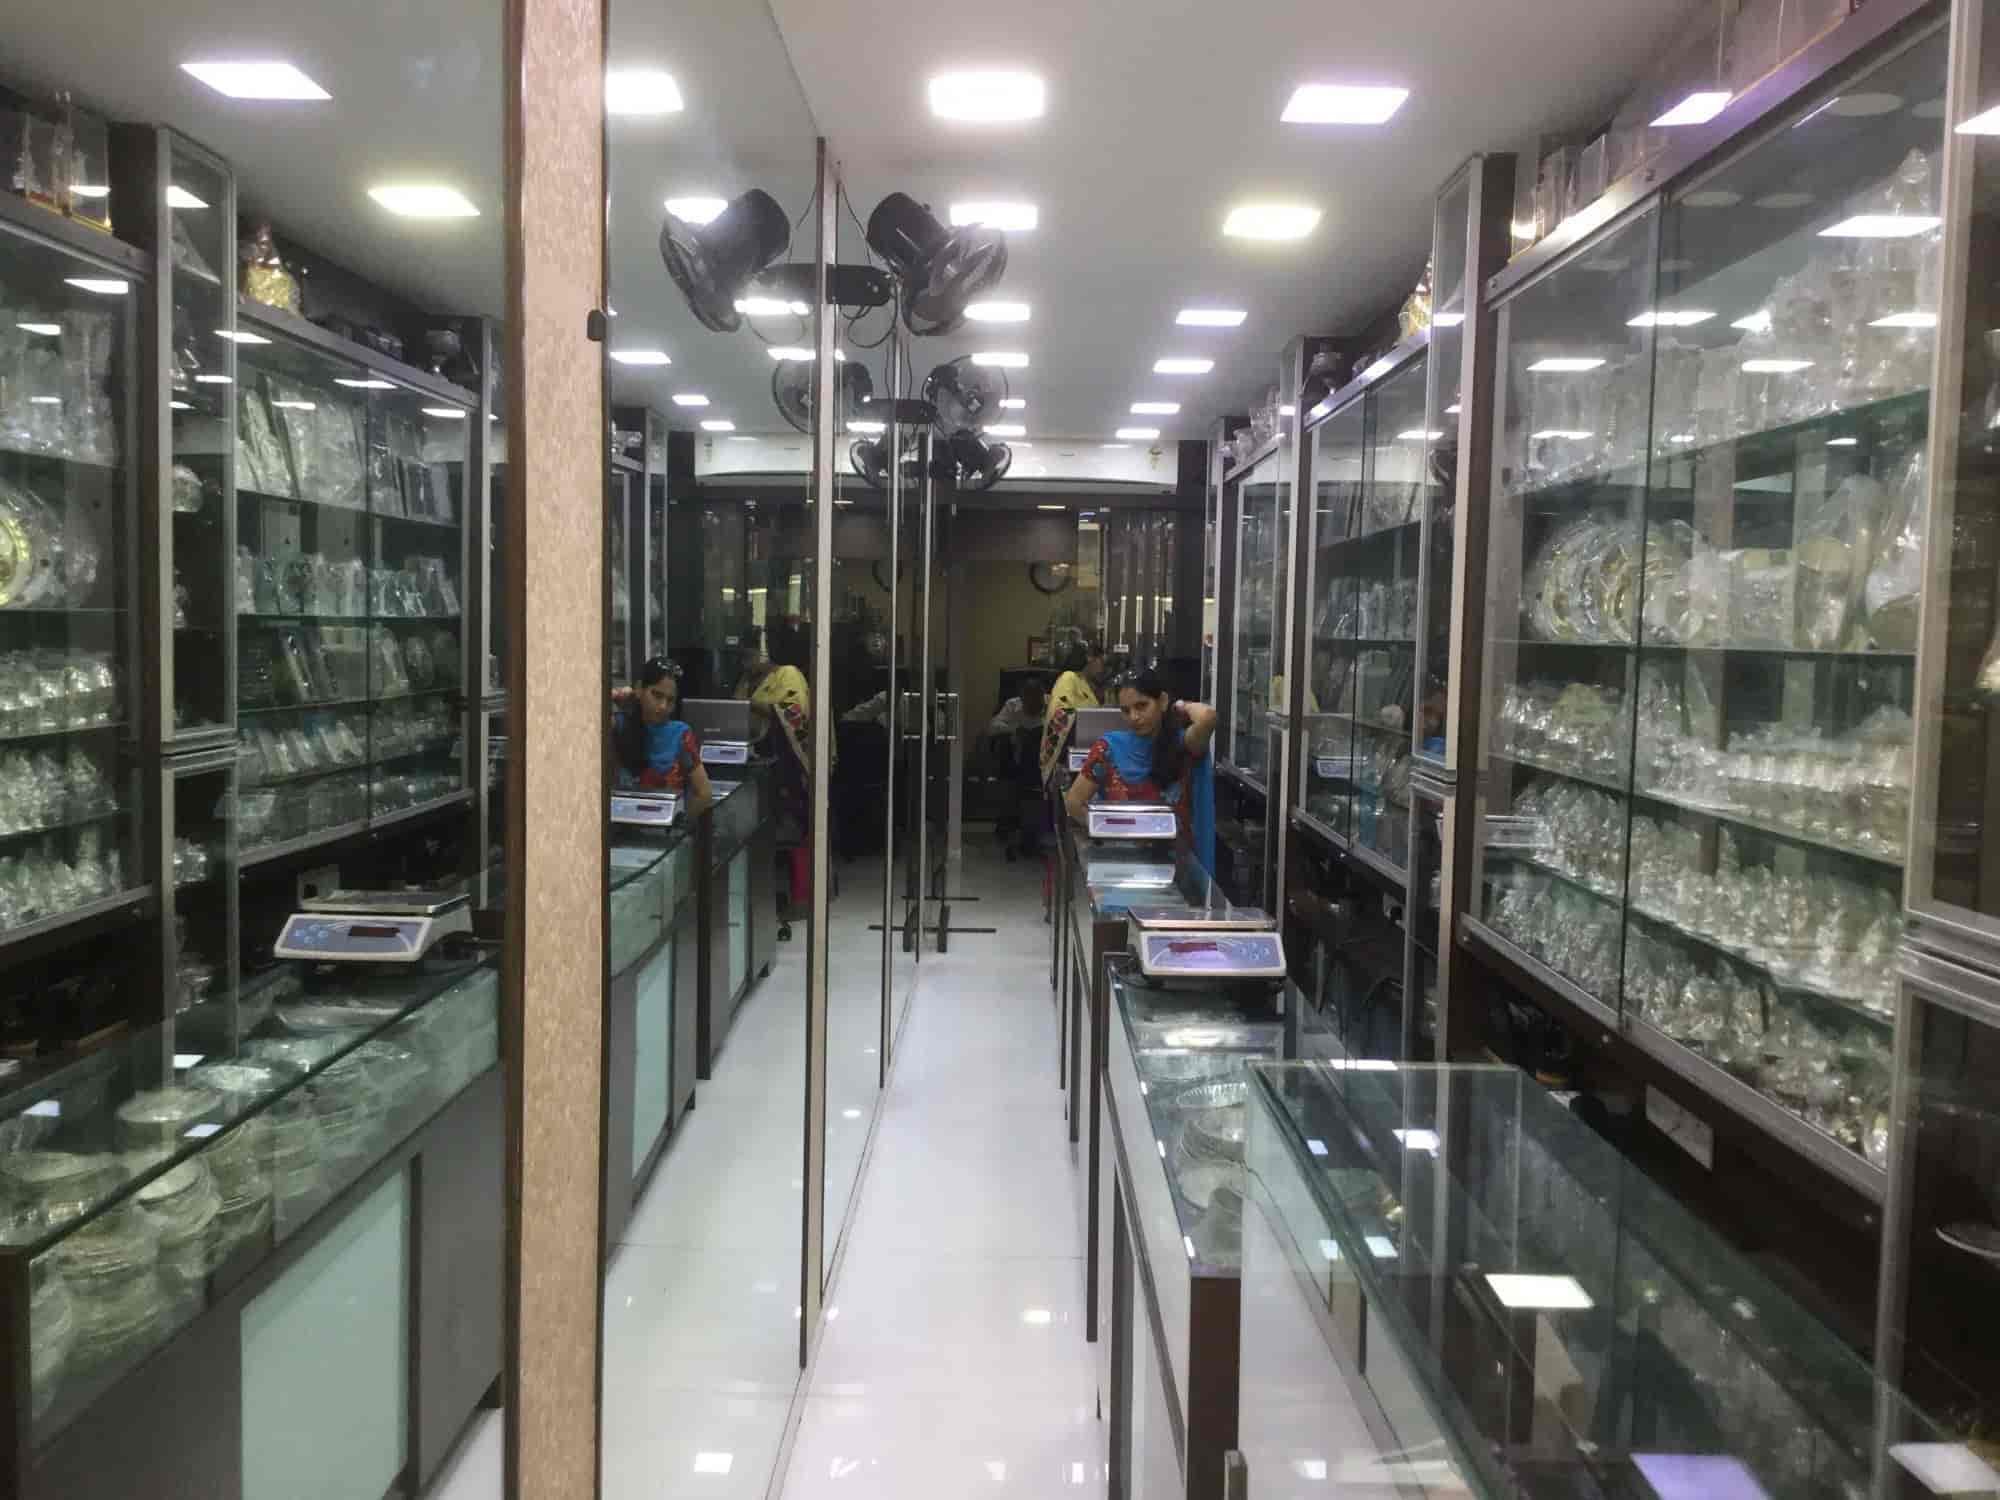 f64a96e2c07 ... Inside View of Silver Article Shop - Pratap Brothers Chandiwala Photos